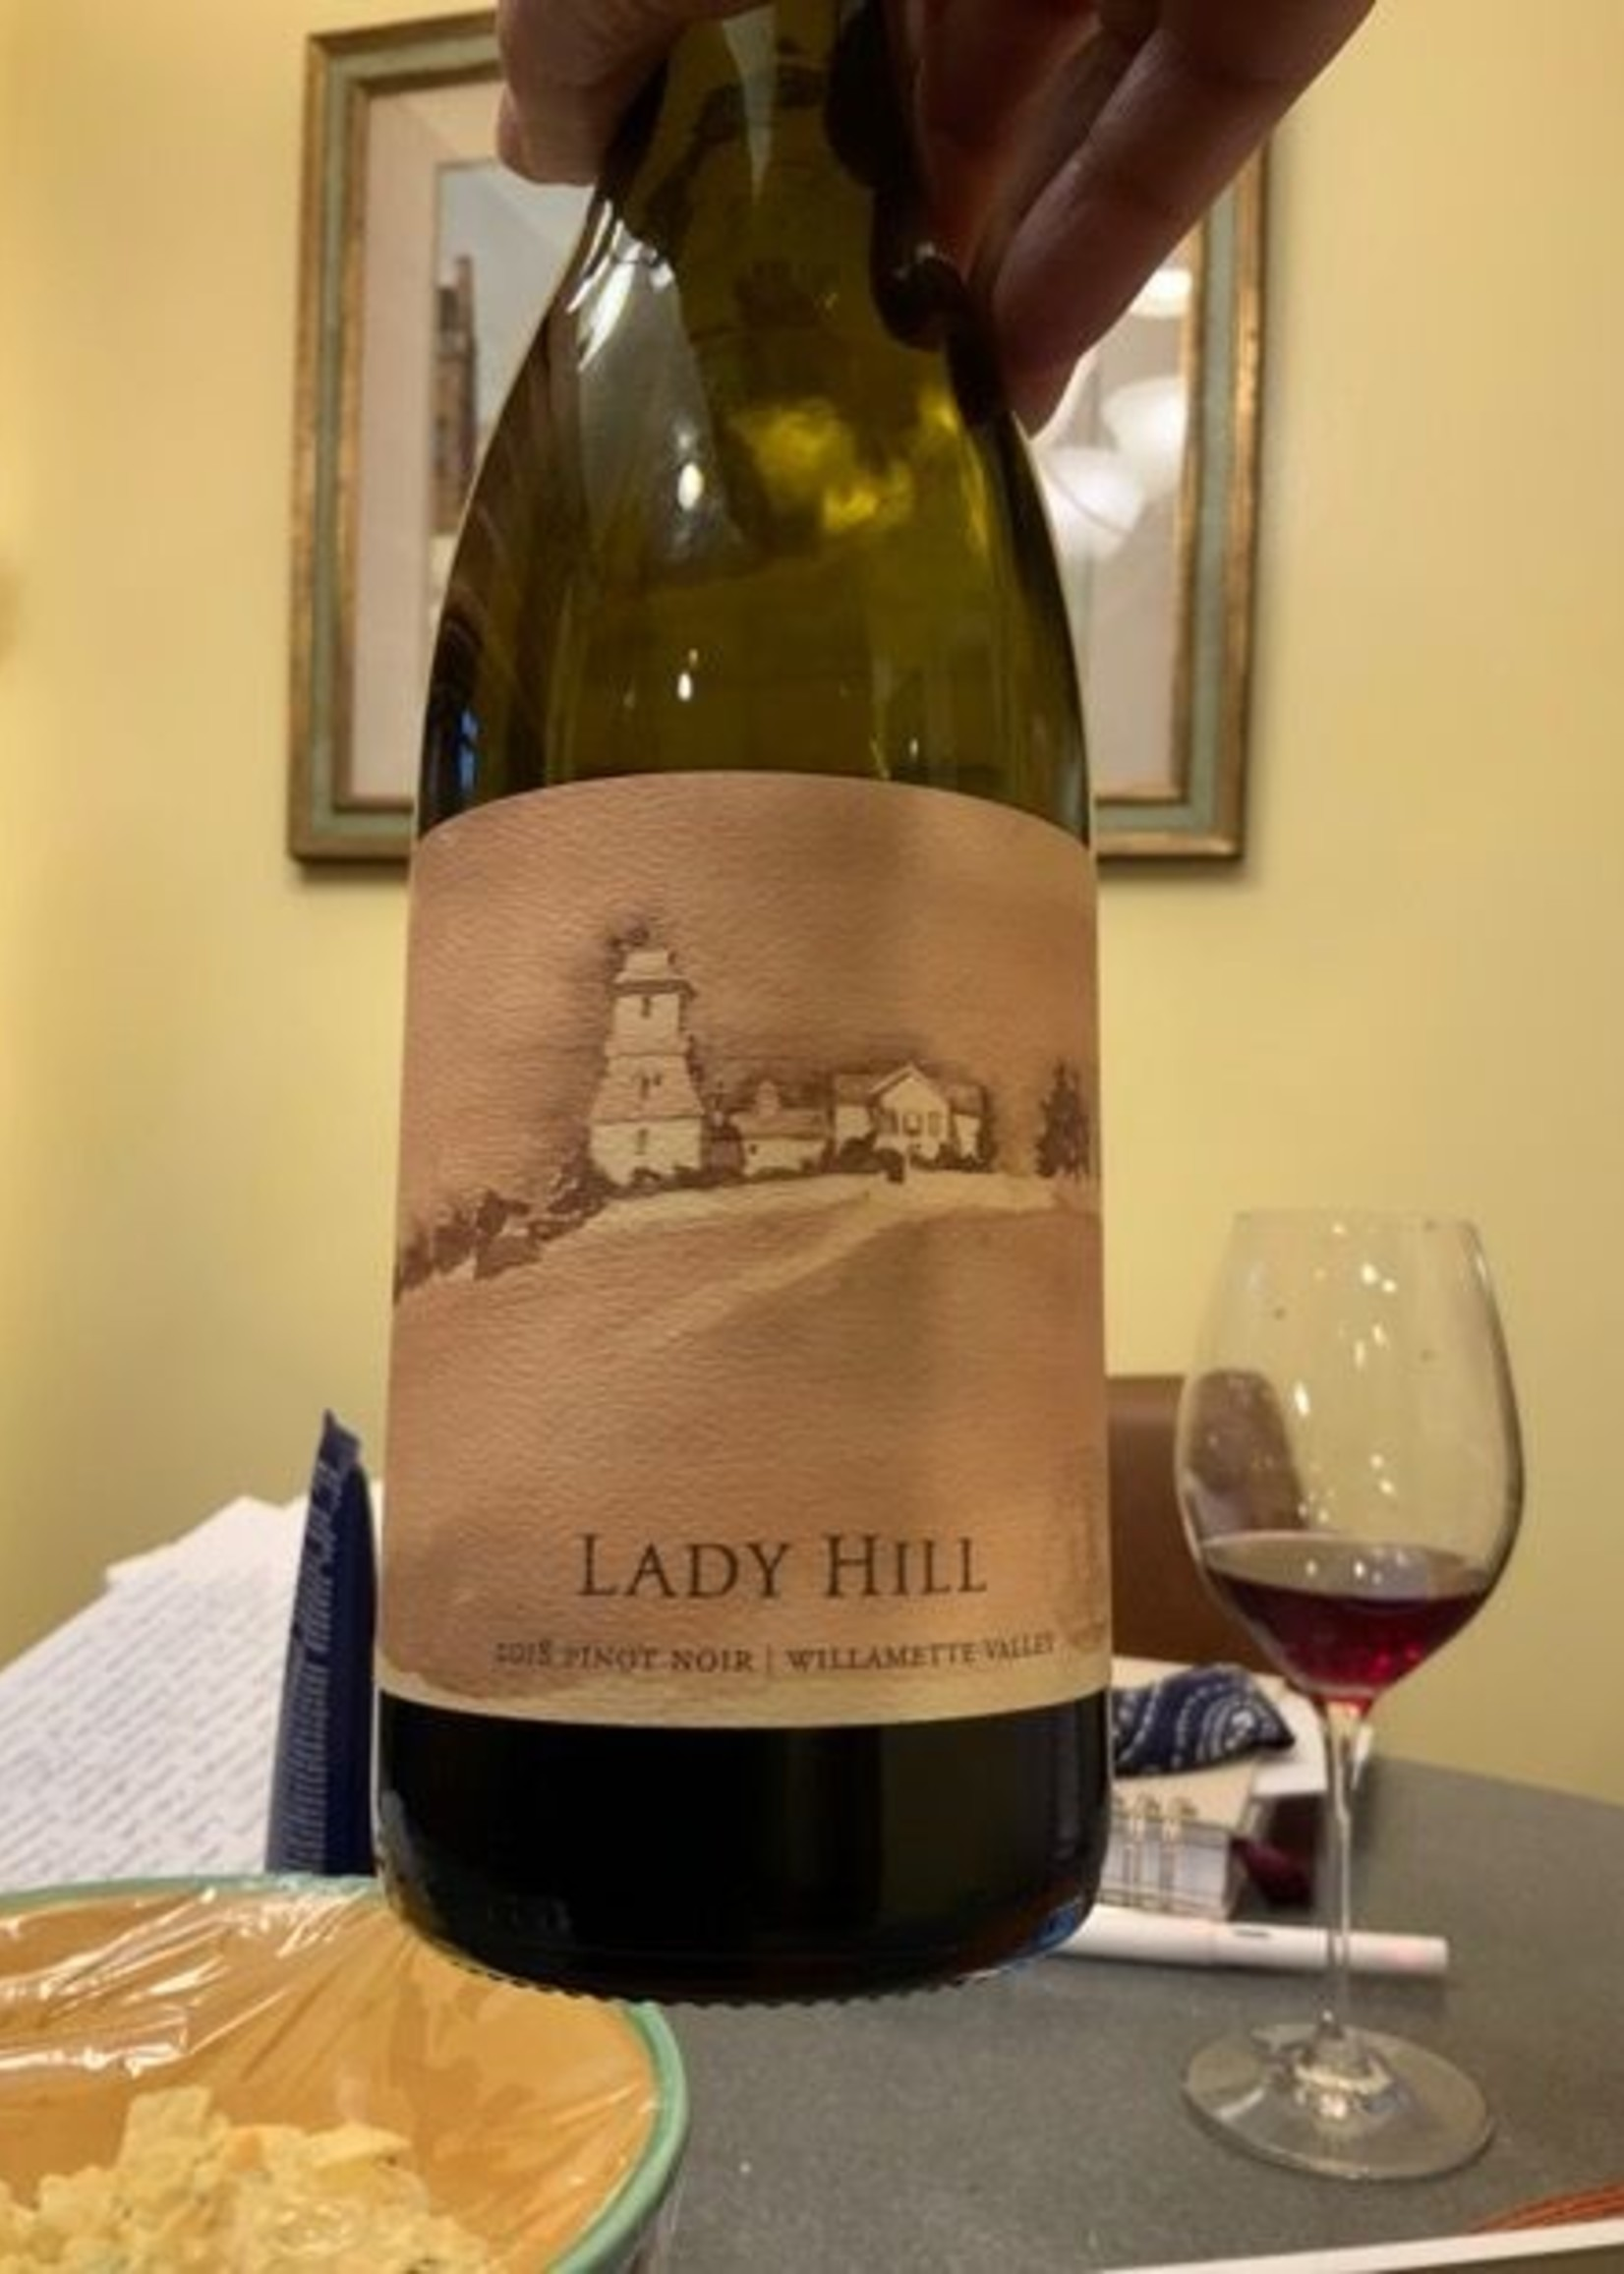 Lady Hill Winery Radicle Vine Pinot Noir, Willamette Valley, OR